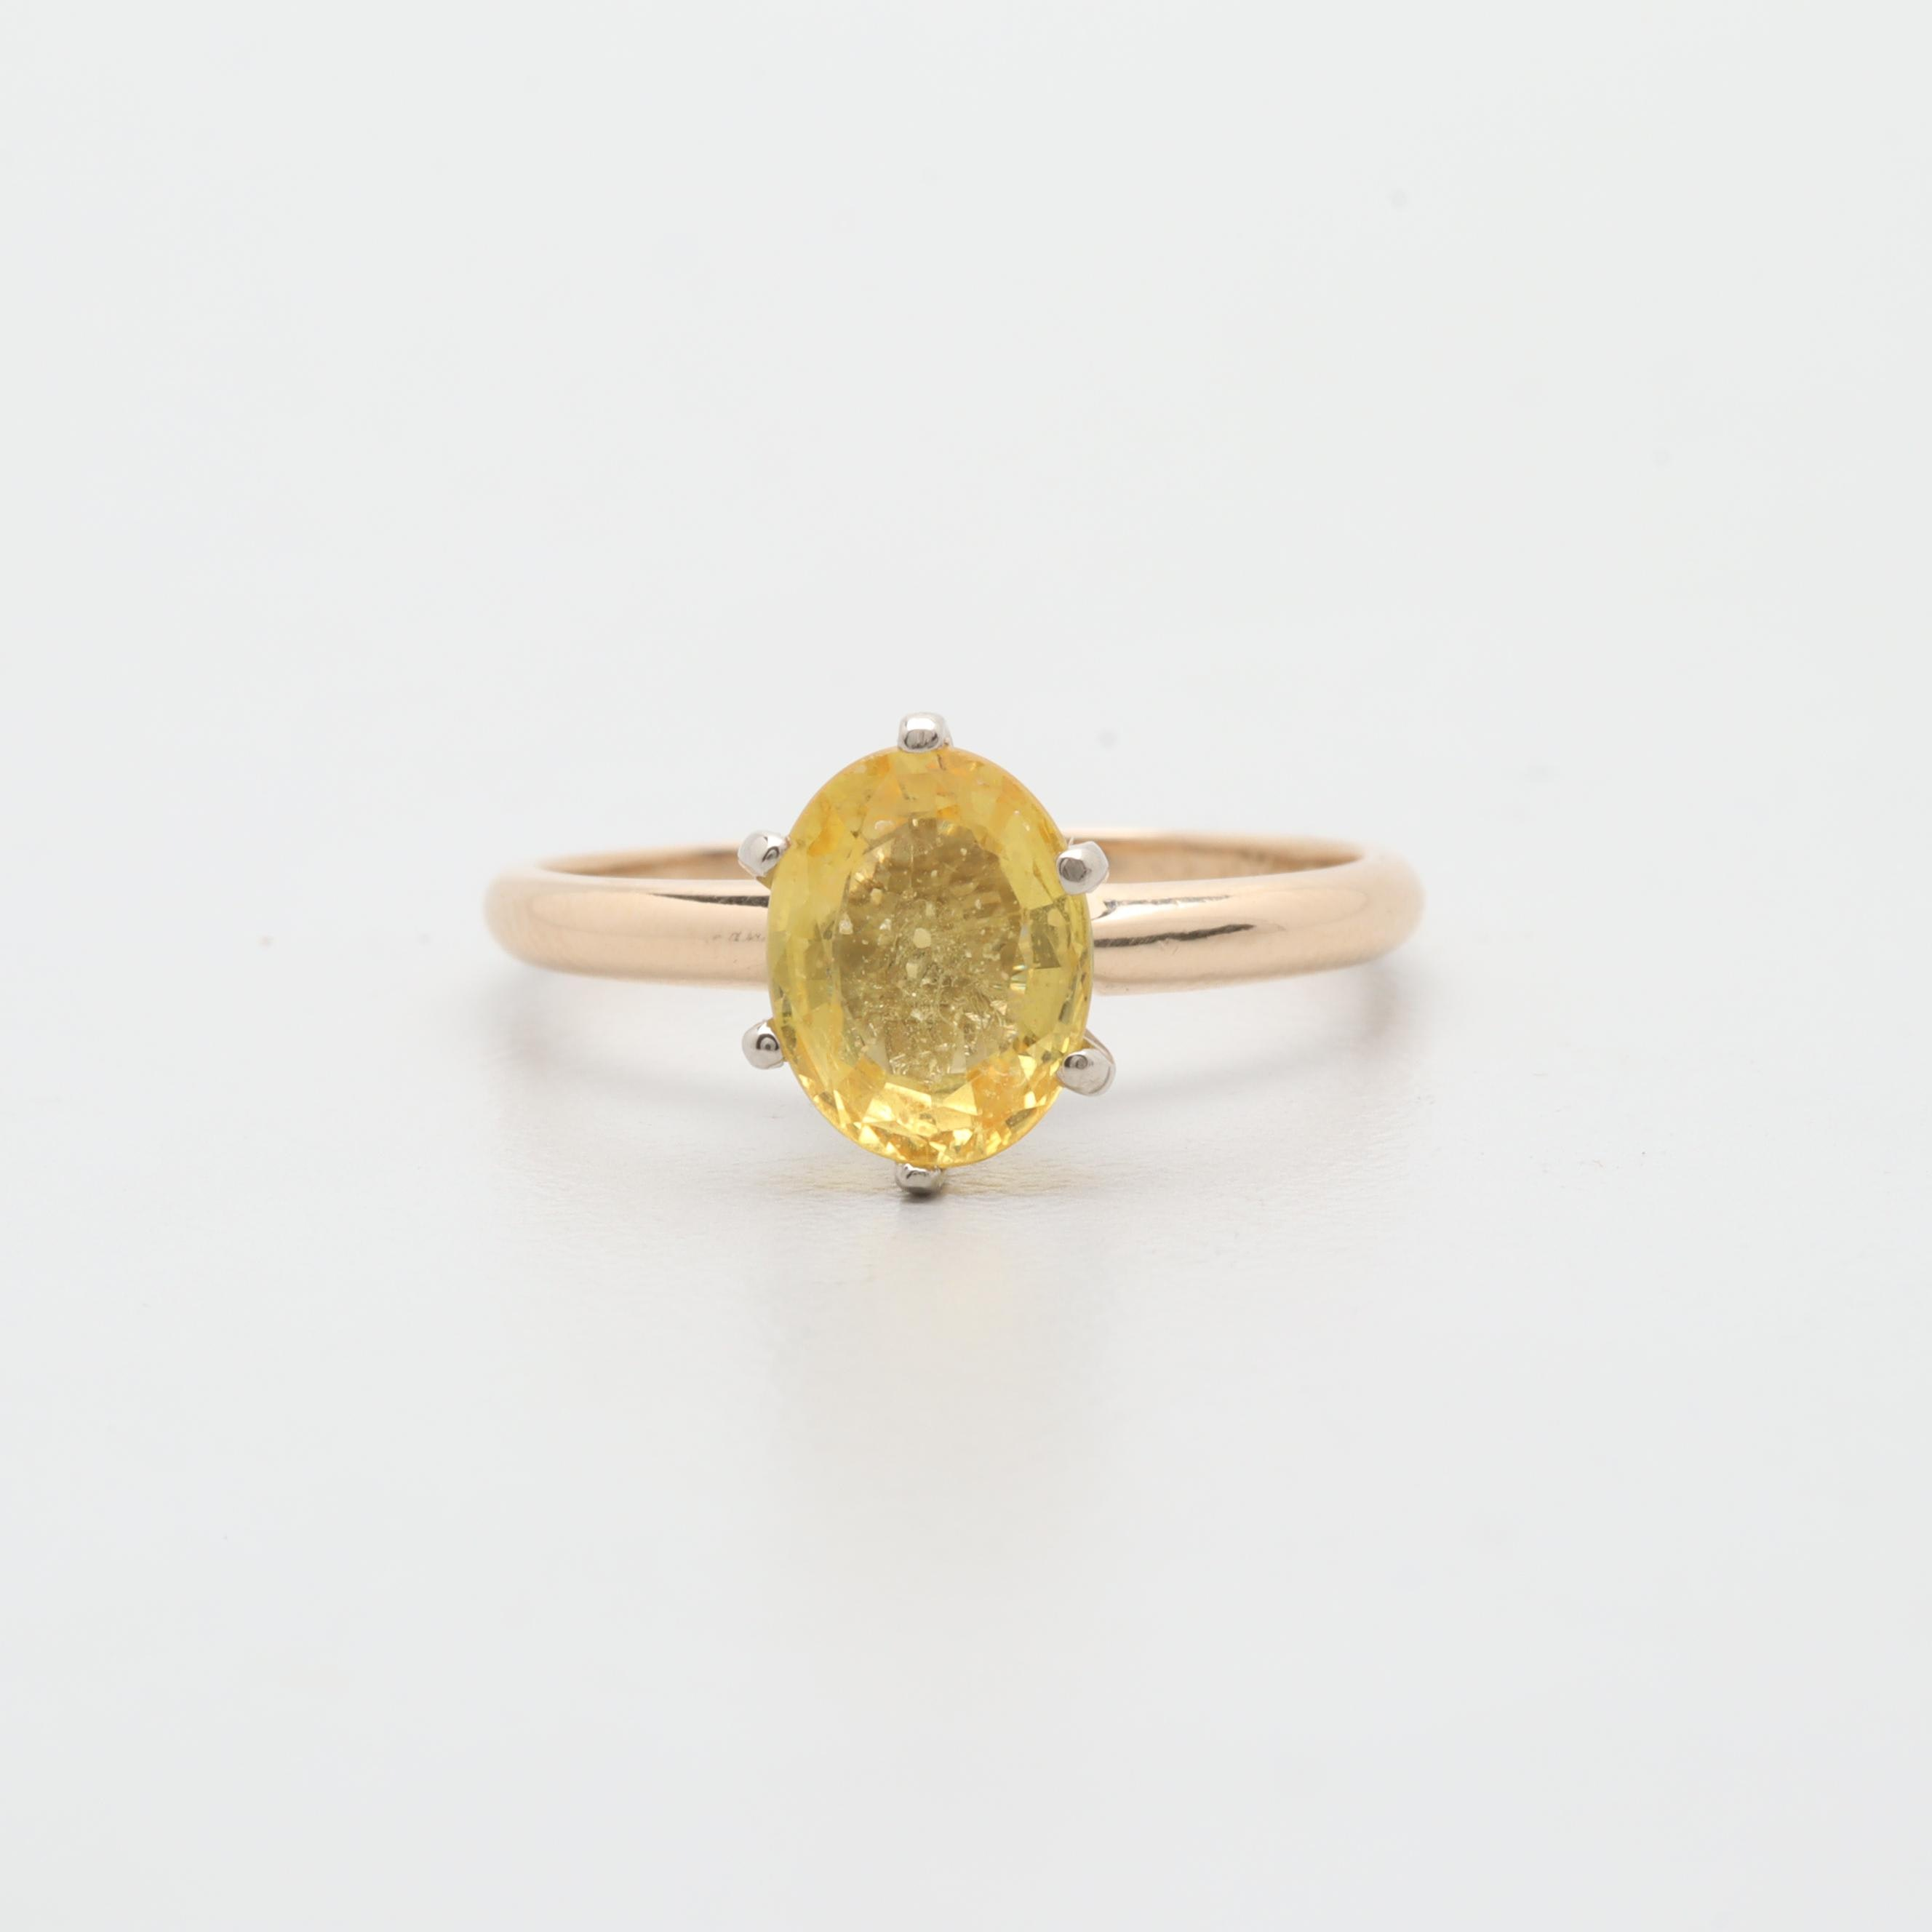 14K Yellow Gold 1.02 CT Yellow Sapphire Solitaire Ring